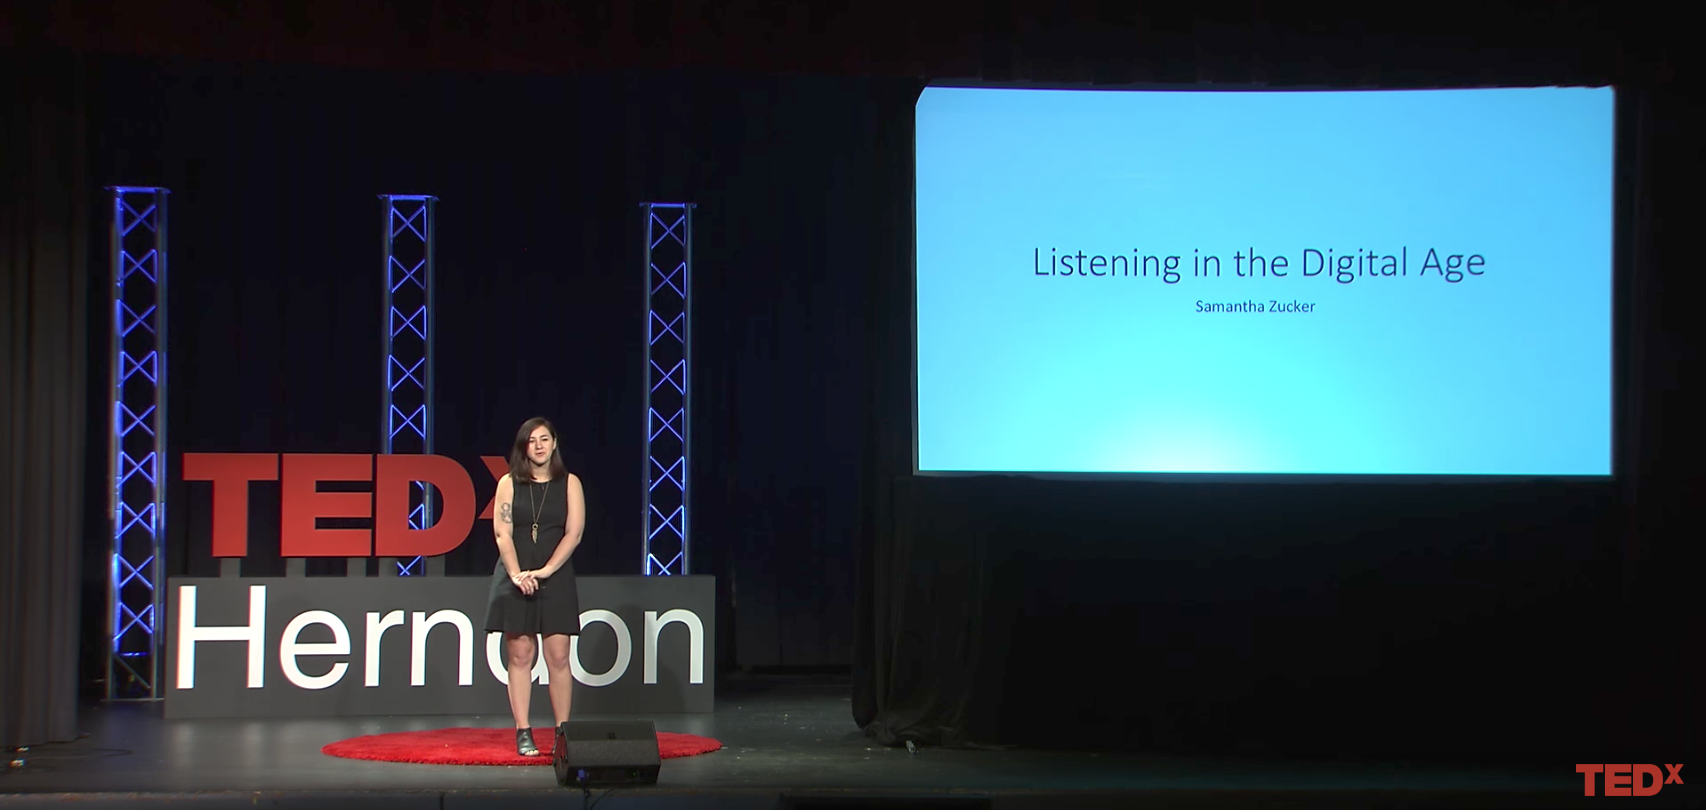 Speaking & Mentorship - From one-on-one discussions to the big stage, I strive to help people learn and use design skills to make an impact in their life. Reach out to discuss opportunities for your organization.You can check out my latest TEDx talk here.